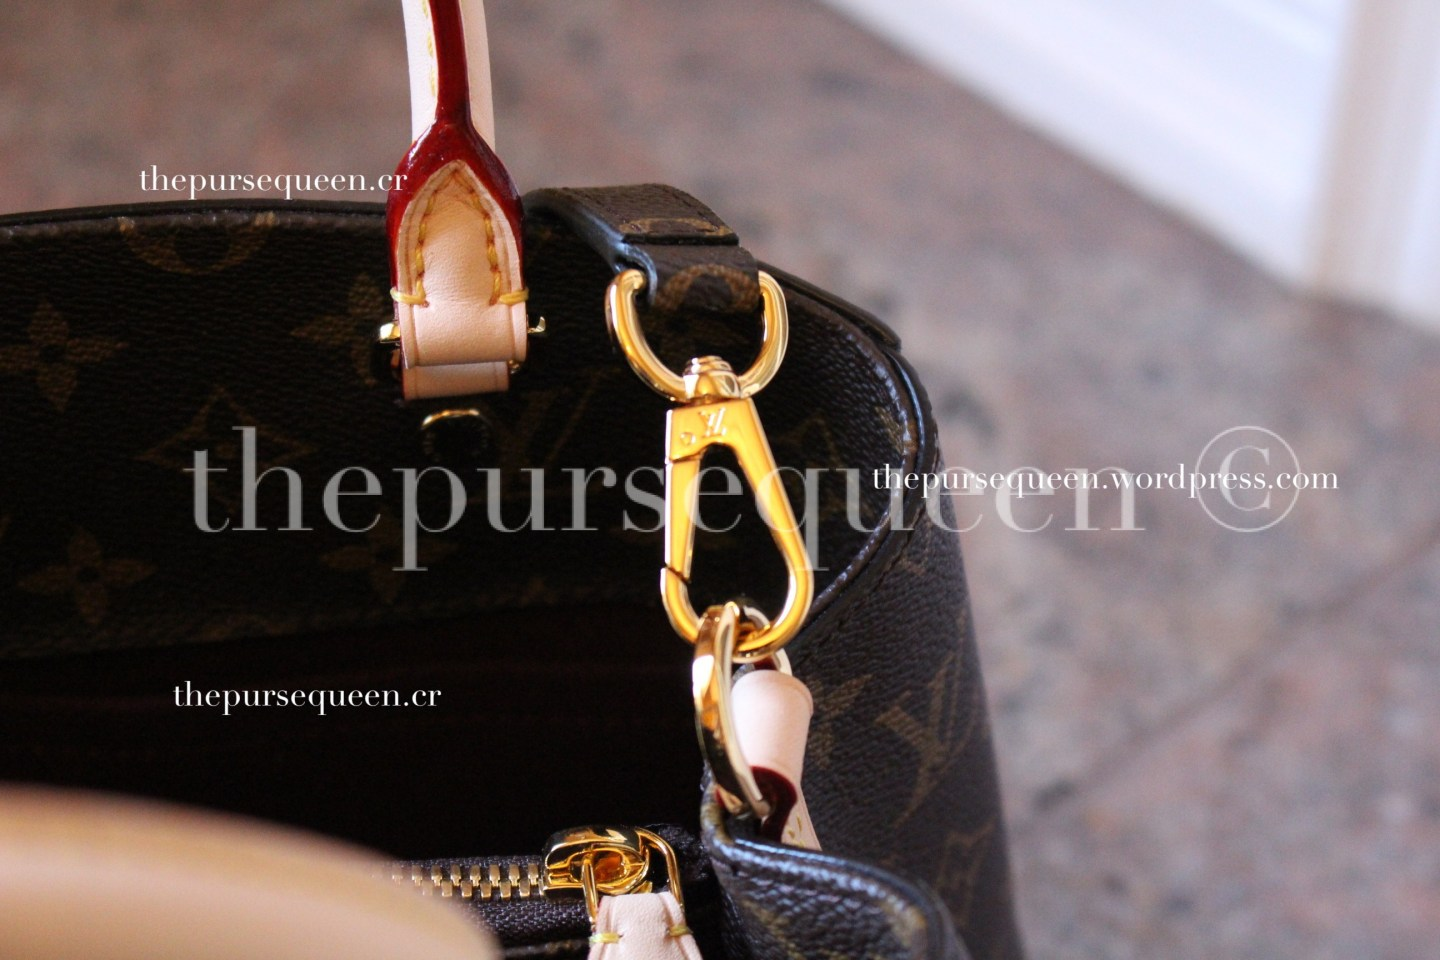 louis vuitton montaigne replica #replicabag #replicabags hardware